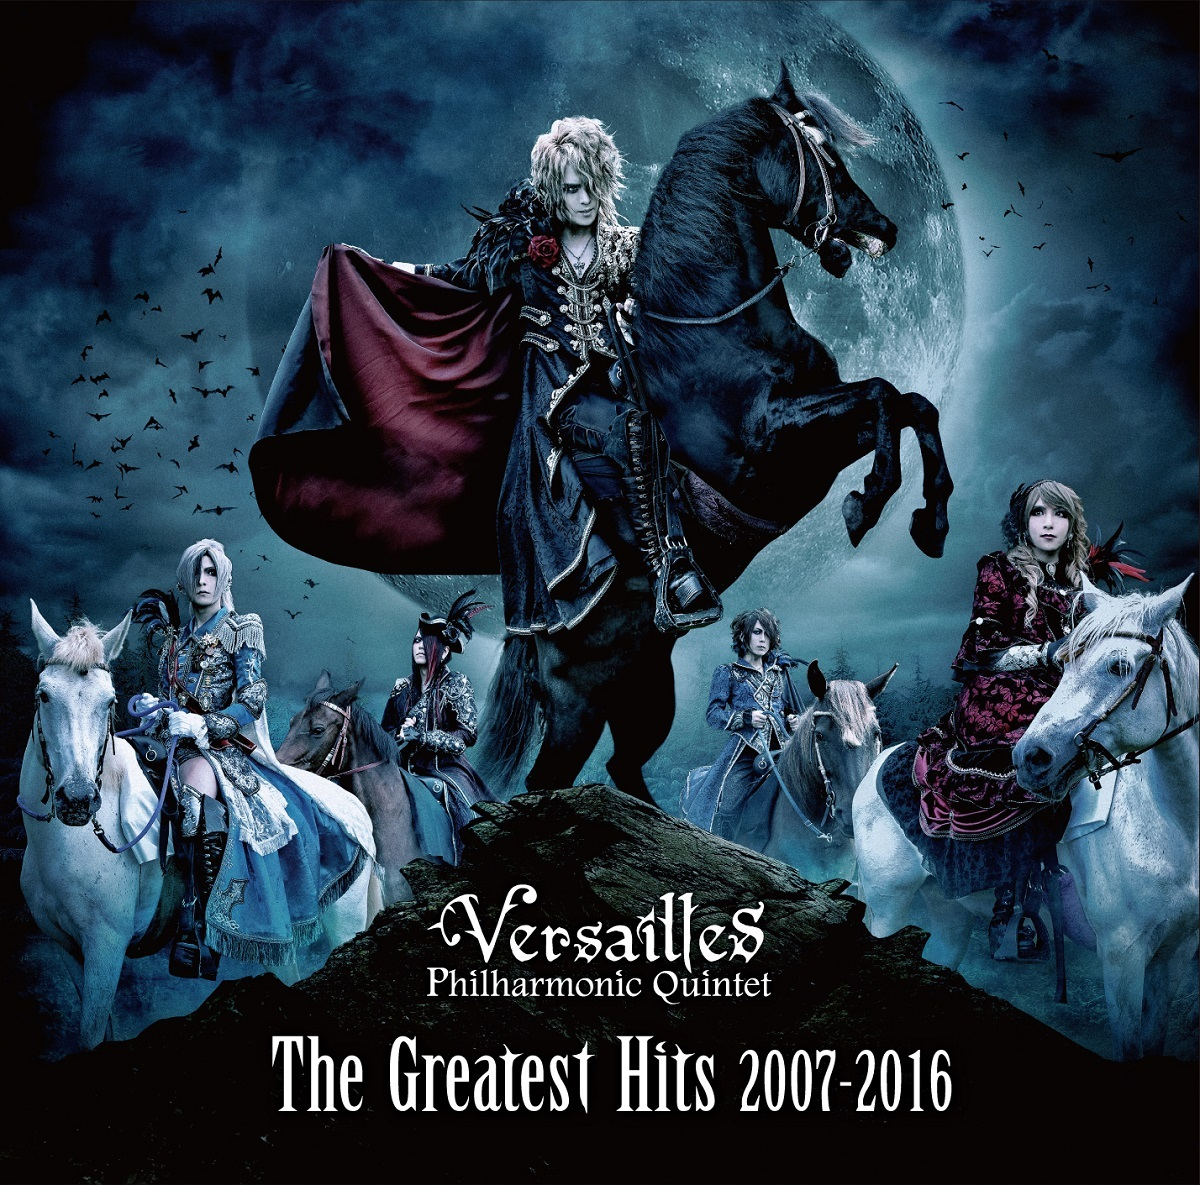 Versailles『The Greatest Hits 2007-2016』通常盤